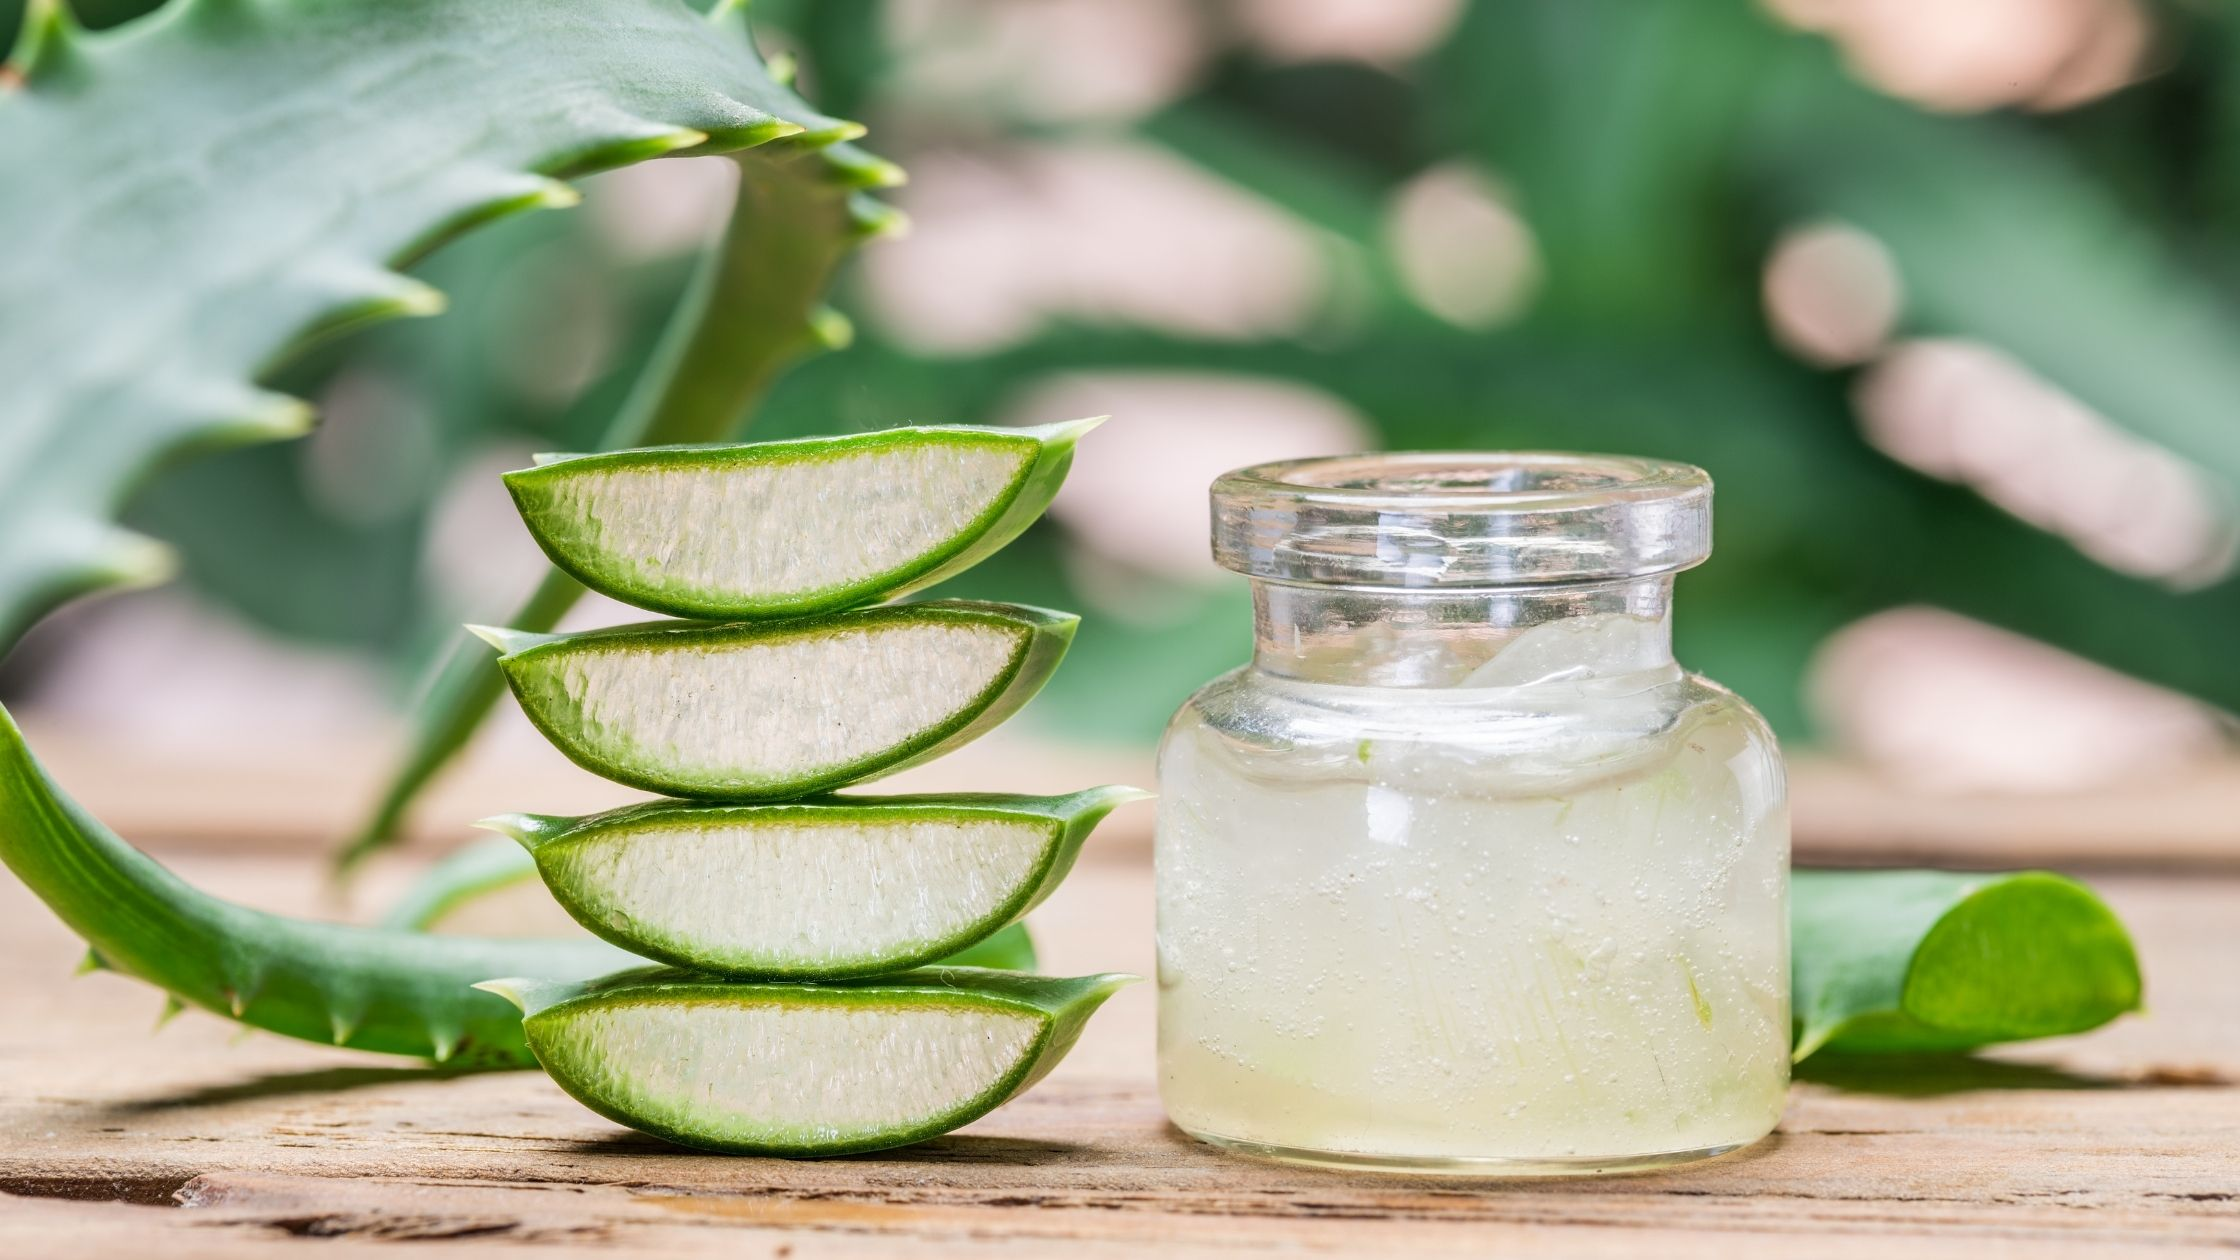 Aloe vera Remedies to Reduce Vaginal Dryness